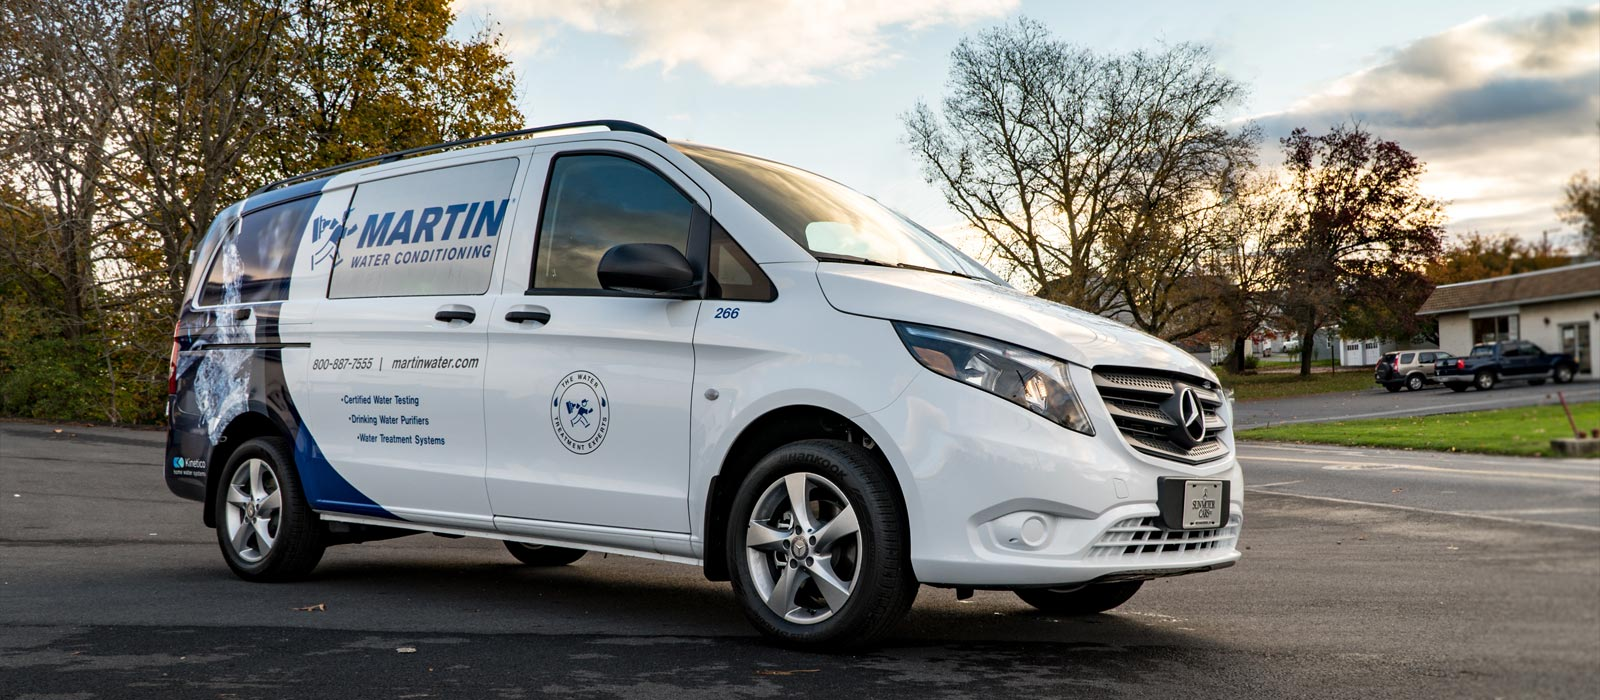 Horst Signs in PA Vehicle Wrap for Martin Water Conditioning Mercedes Van in Myerstown PA